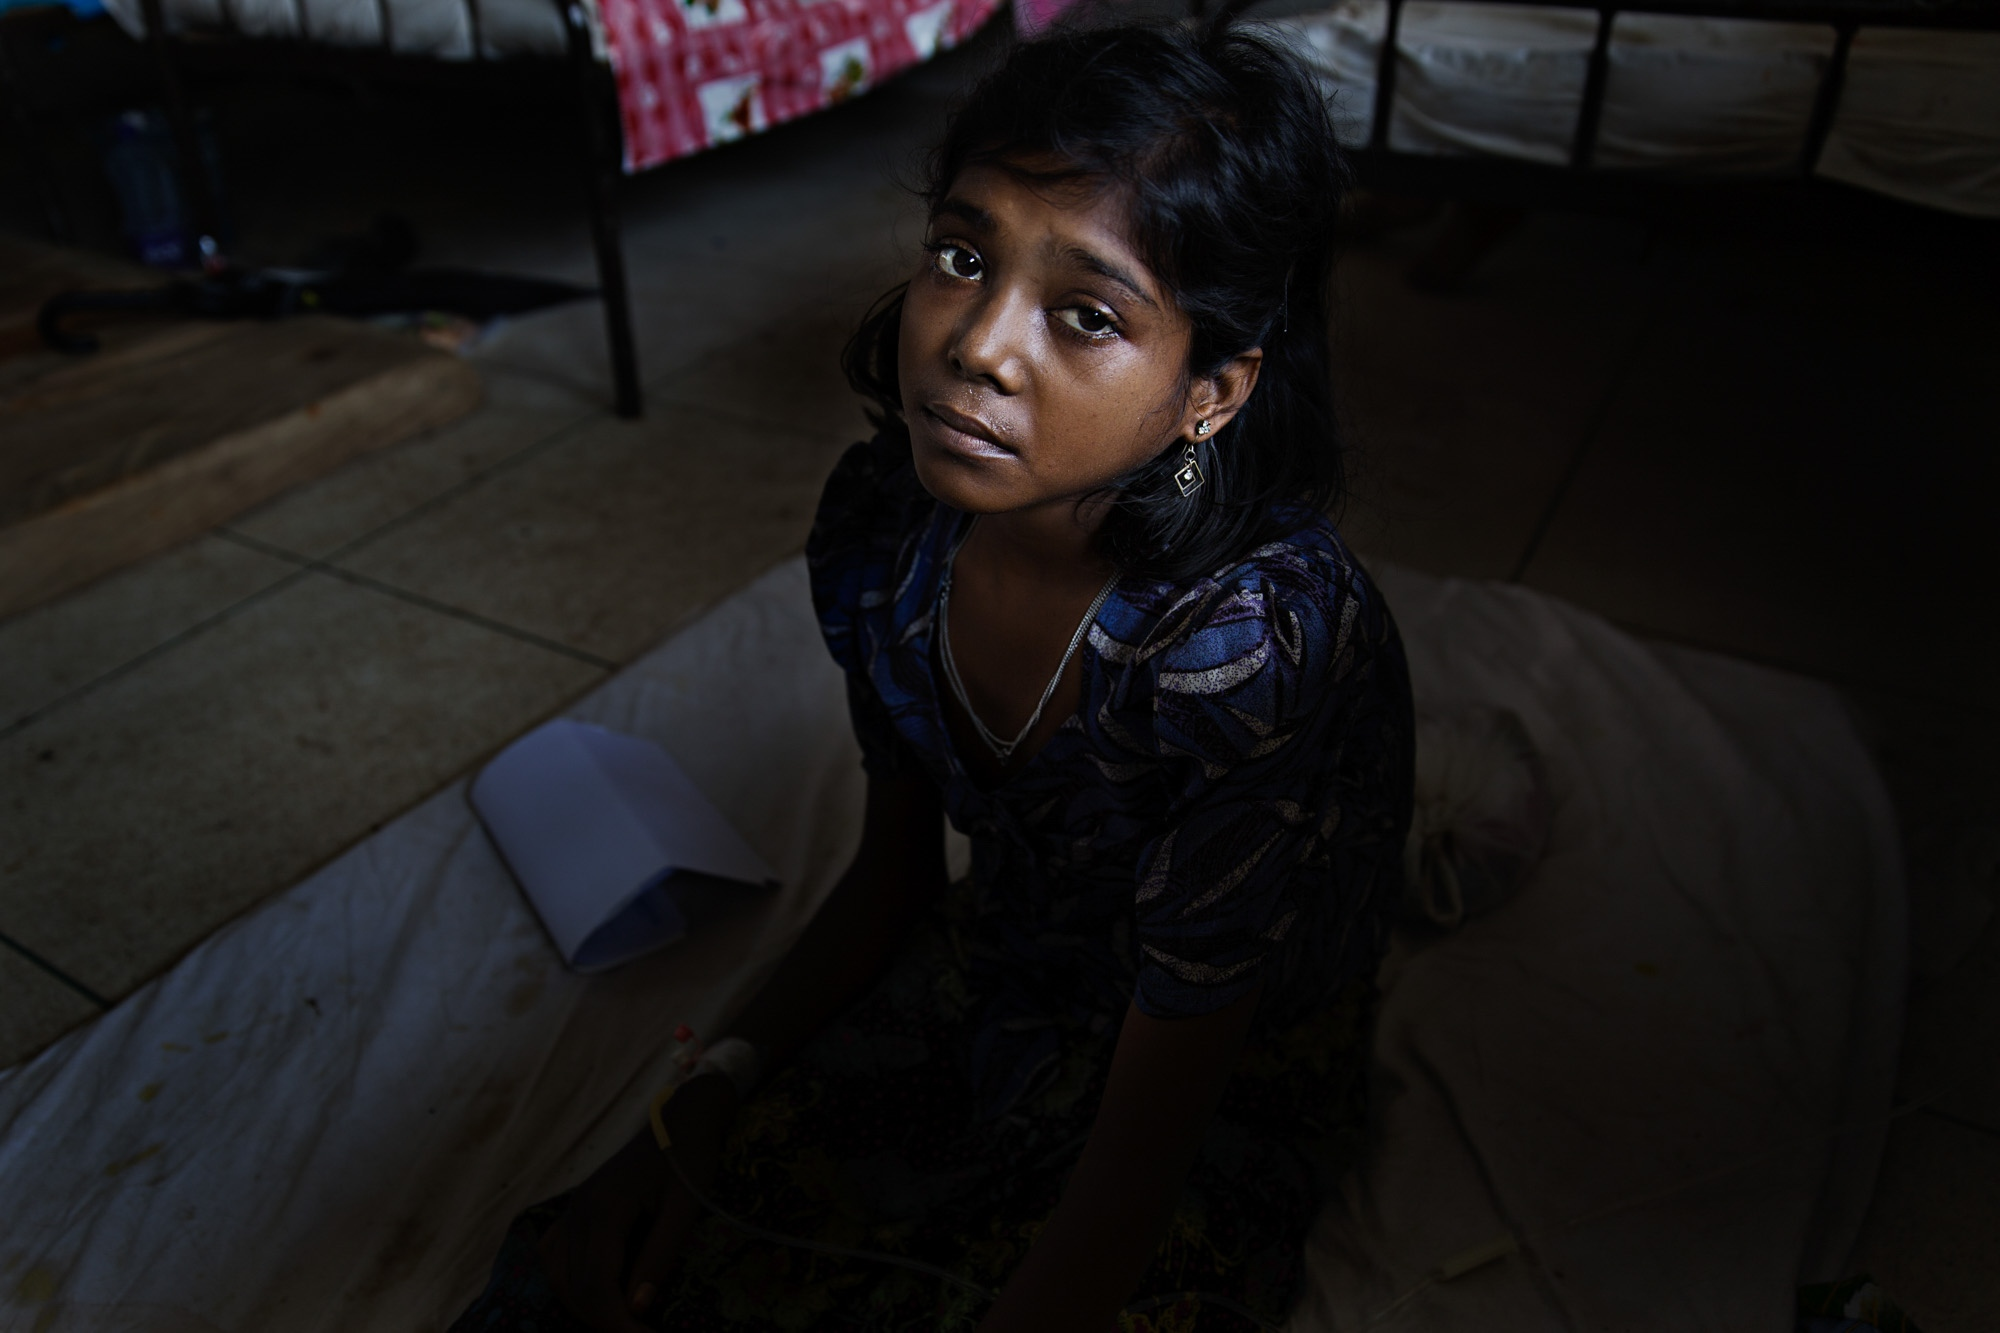 Saleha, 16, suffering from malnutrition, sits in Sadar Hospital in Cox's Bazar. She lost her parents on the way to Bangladesh, but is occasionally visited by her sister who lives in the camps. However, she spends the majority of her days alone.